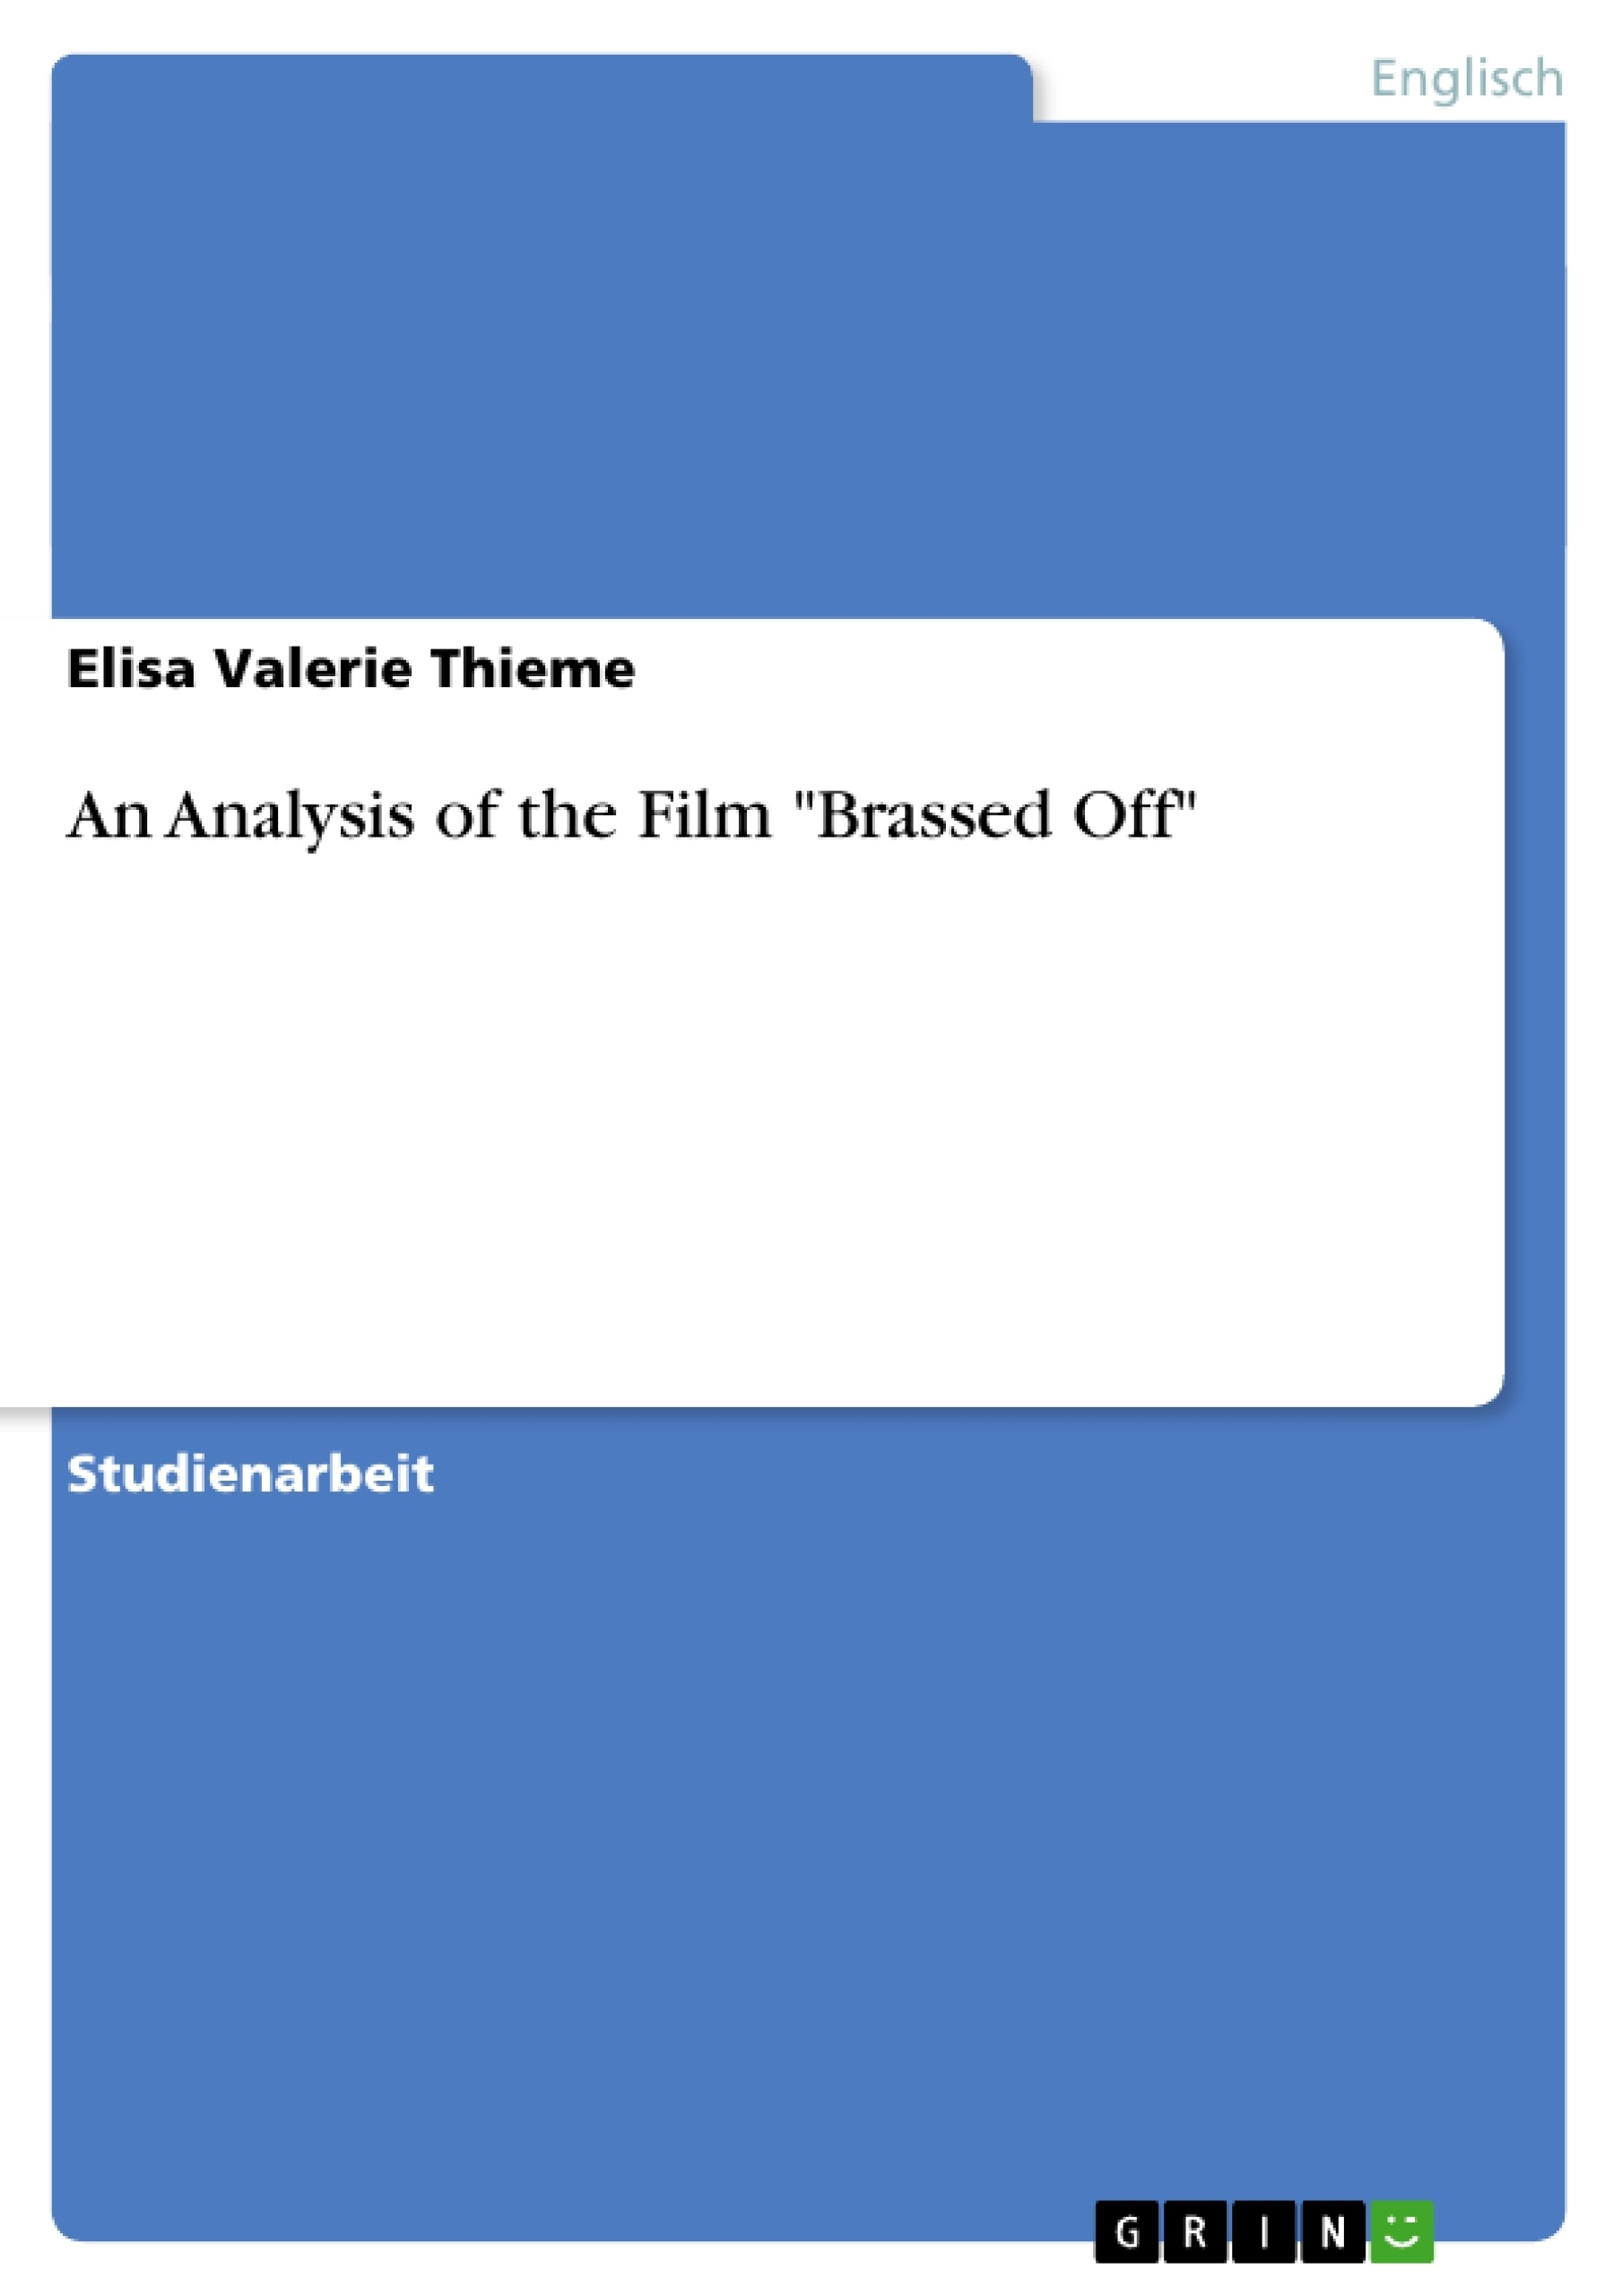 an analysis of the film brassed off masterarbeit hausarbeit an analysis of the film brassed off masterarbeit hausarbeit bachelorarbeit veroumlffentlichen